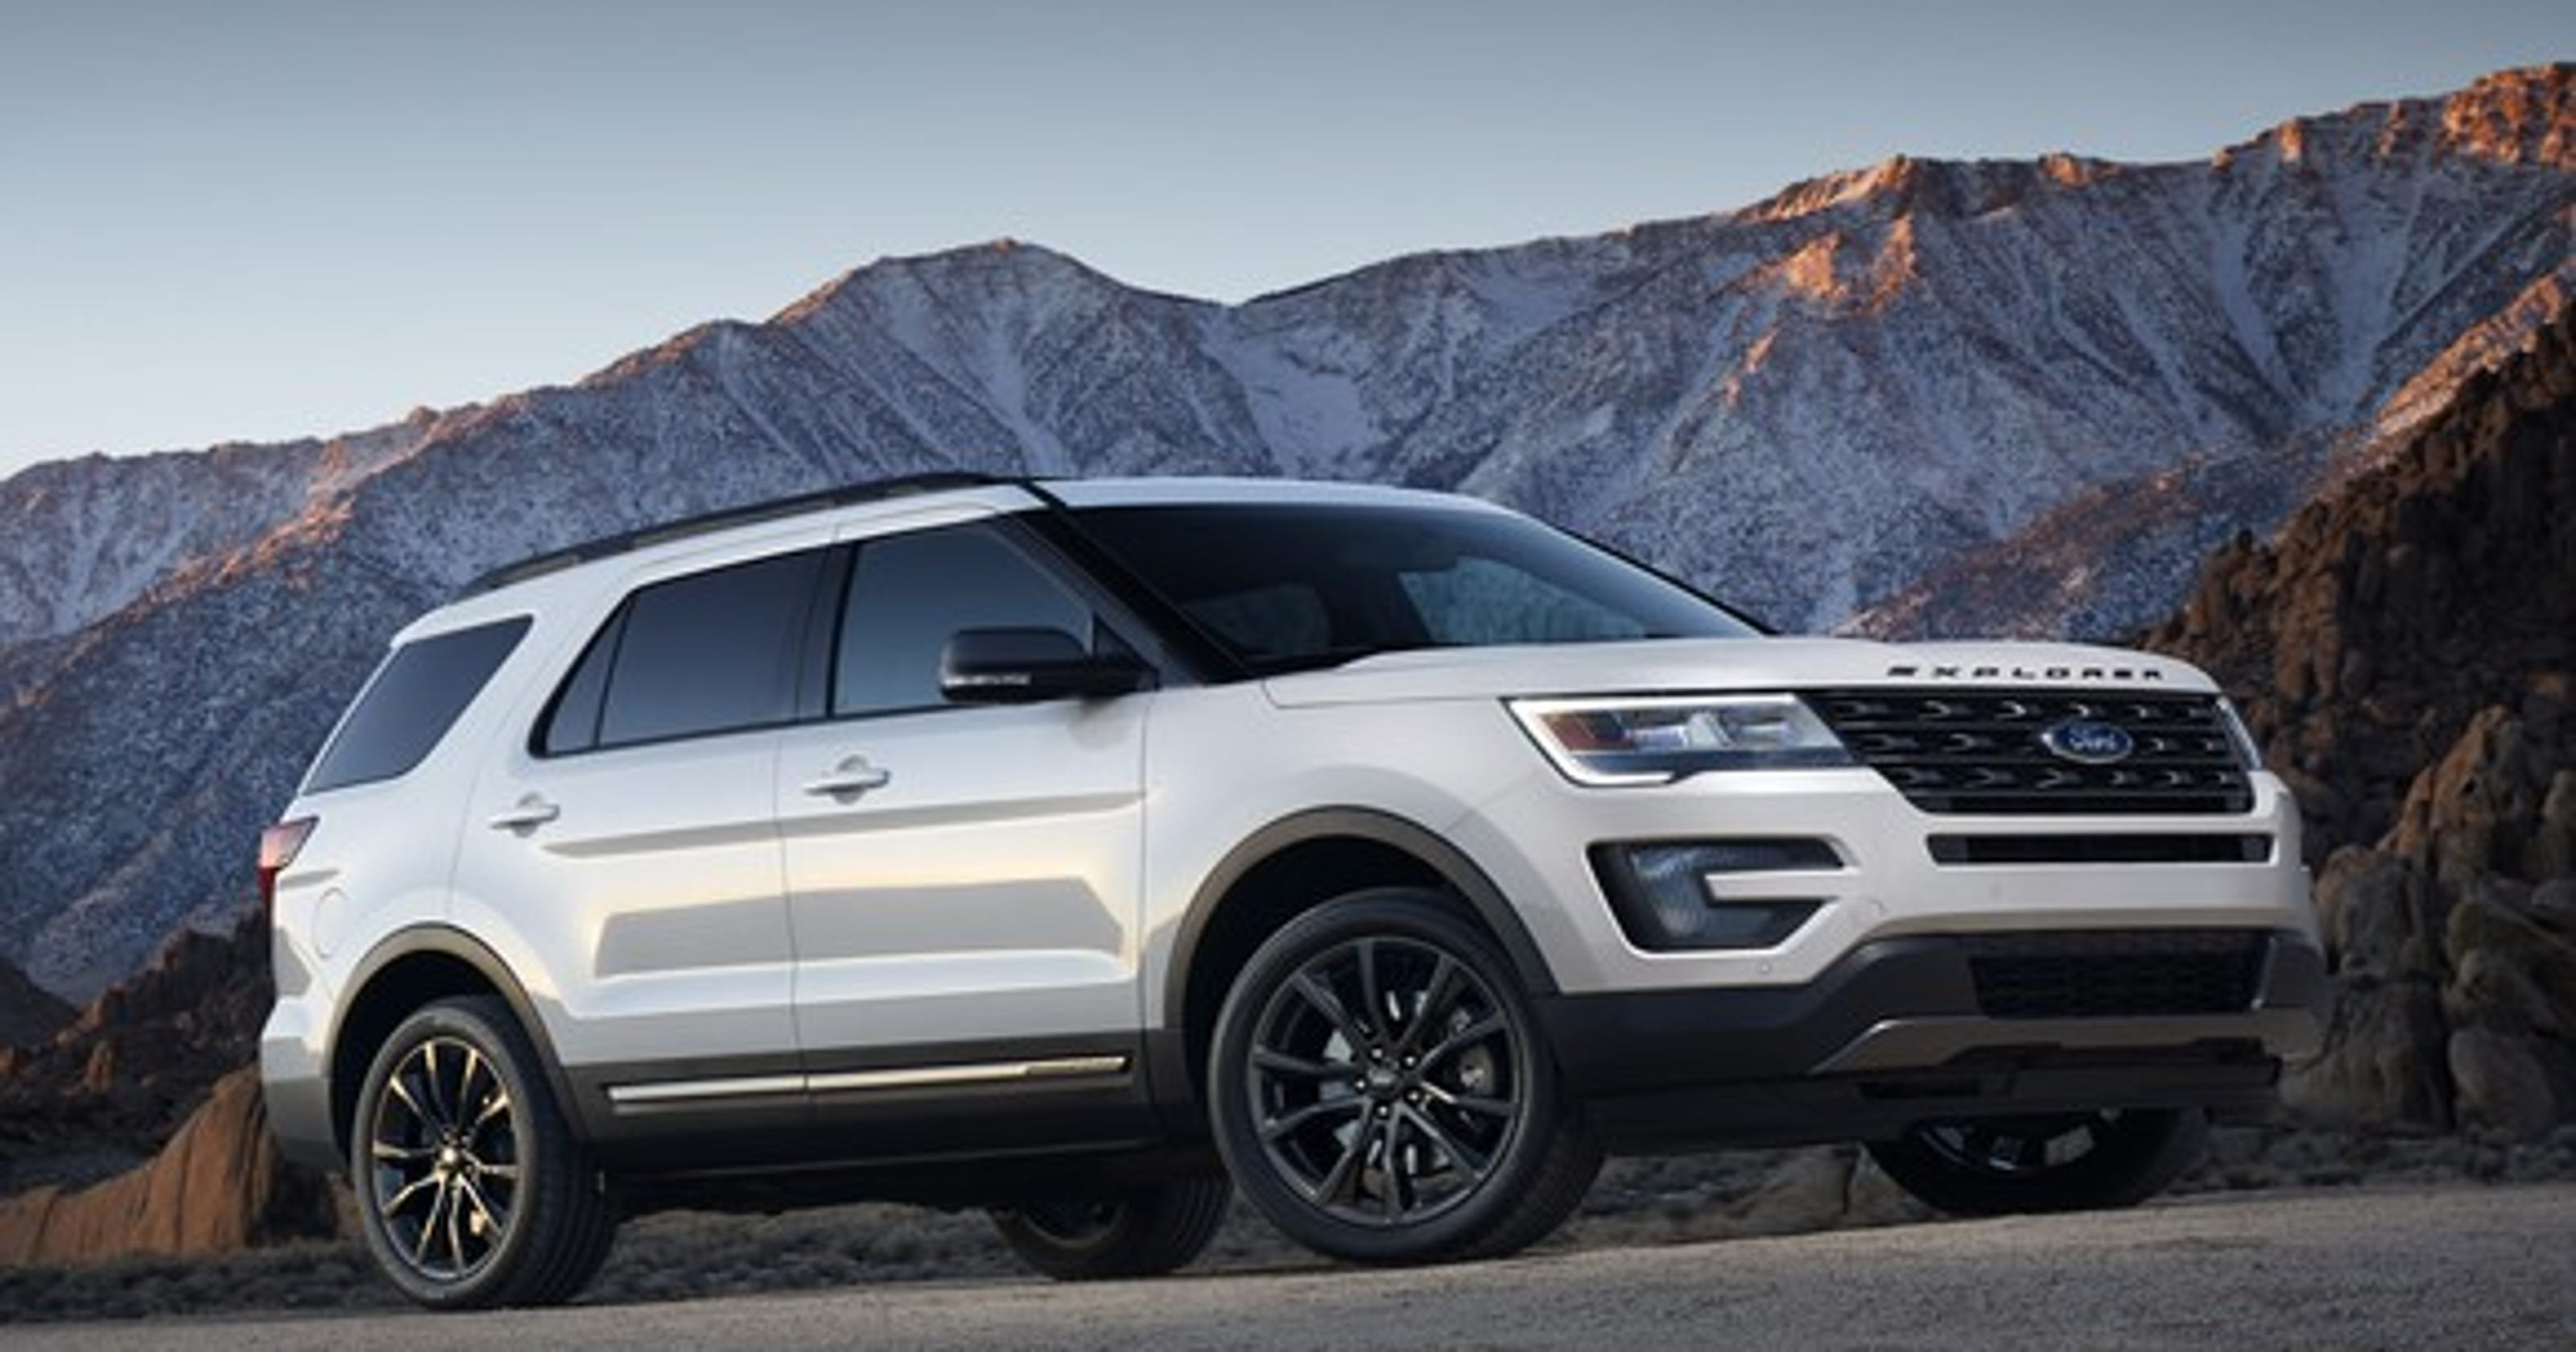 Ford Explorer Exhaust Leak >> Is The Ford Explorer Suv Making People Sick